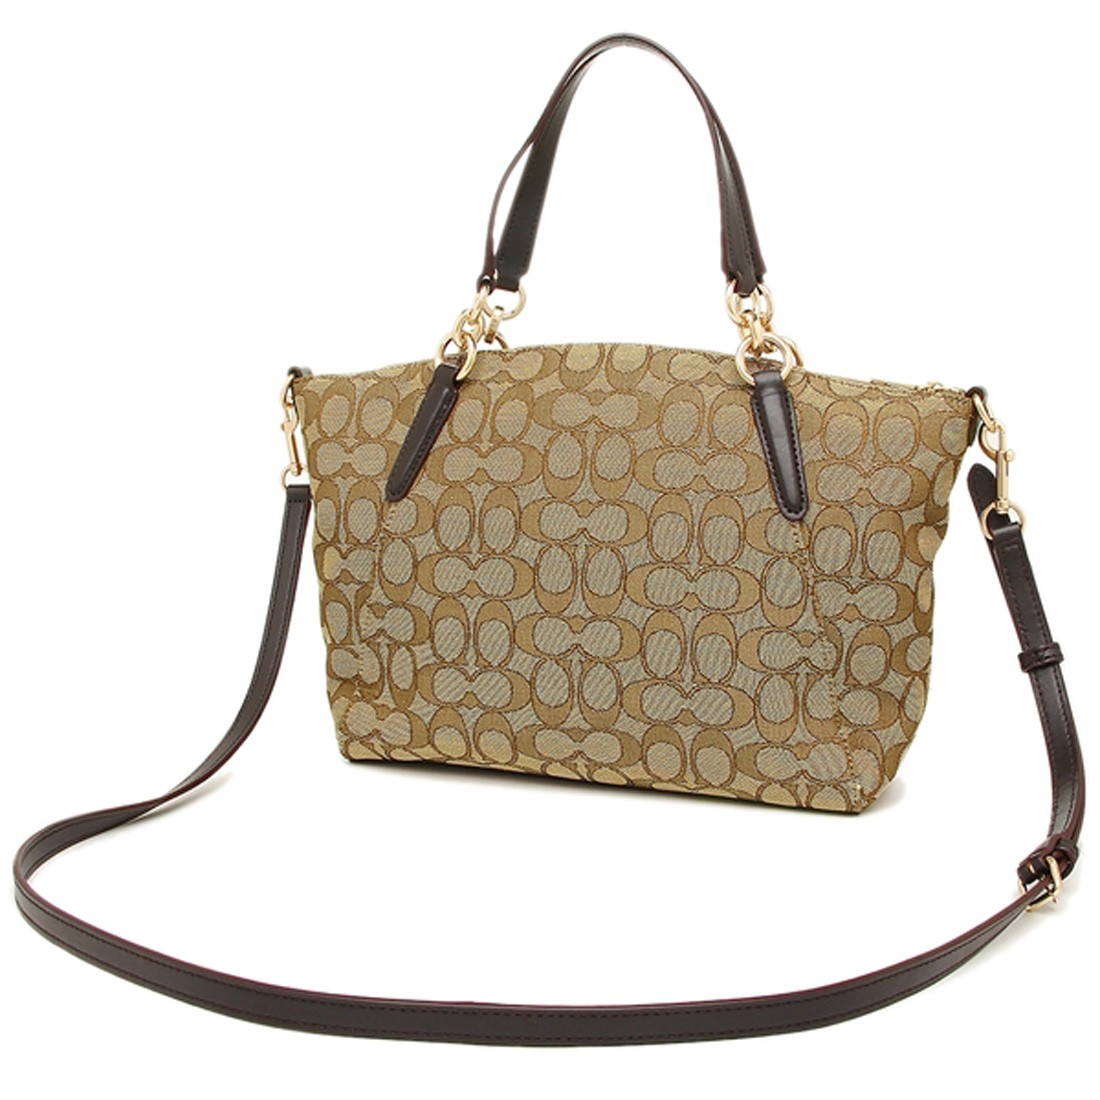 3075ea85c2b7 NWT COACH Small Kelsey Satchel Signature Jacquard Fabric Crossbody ...